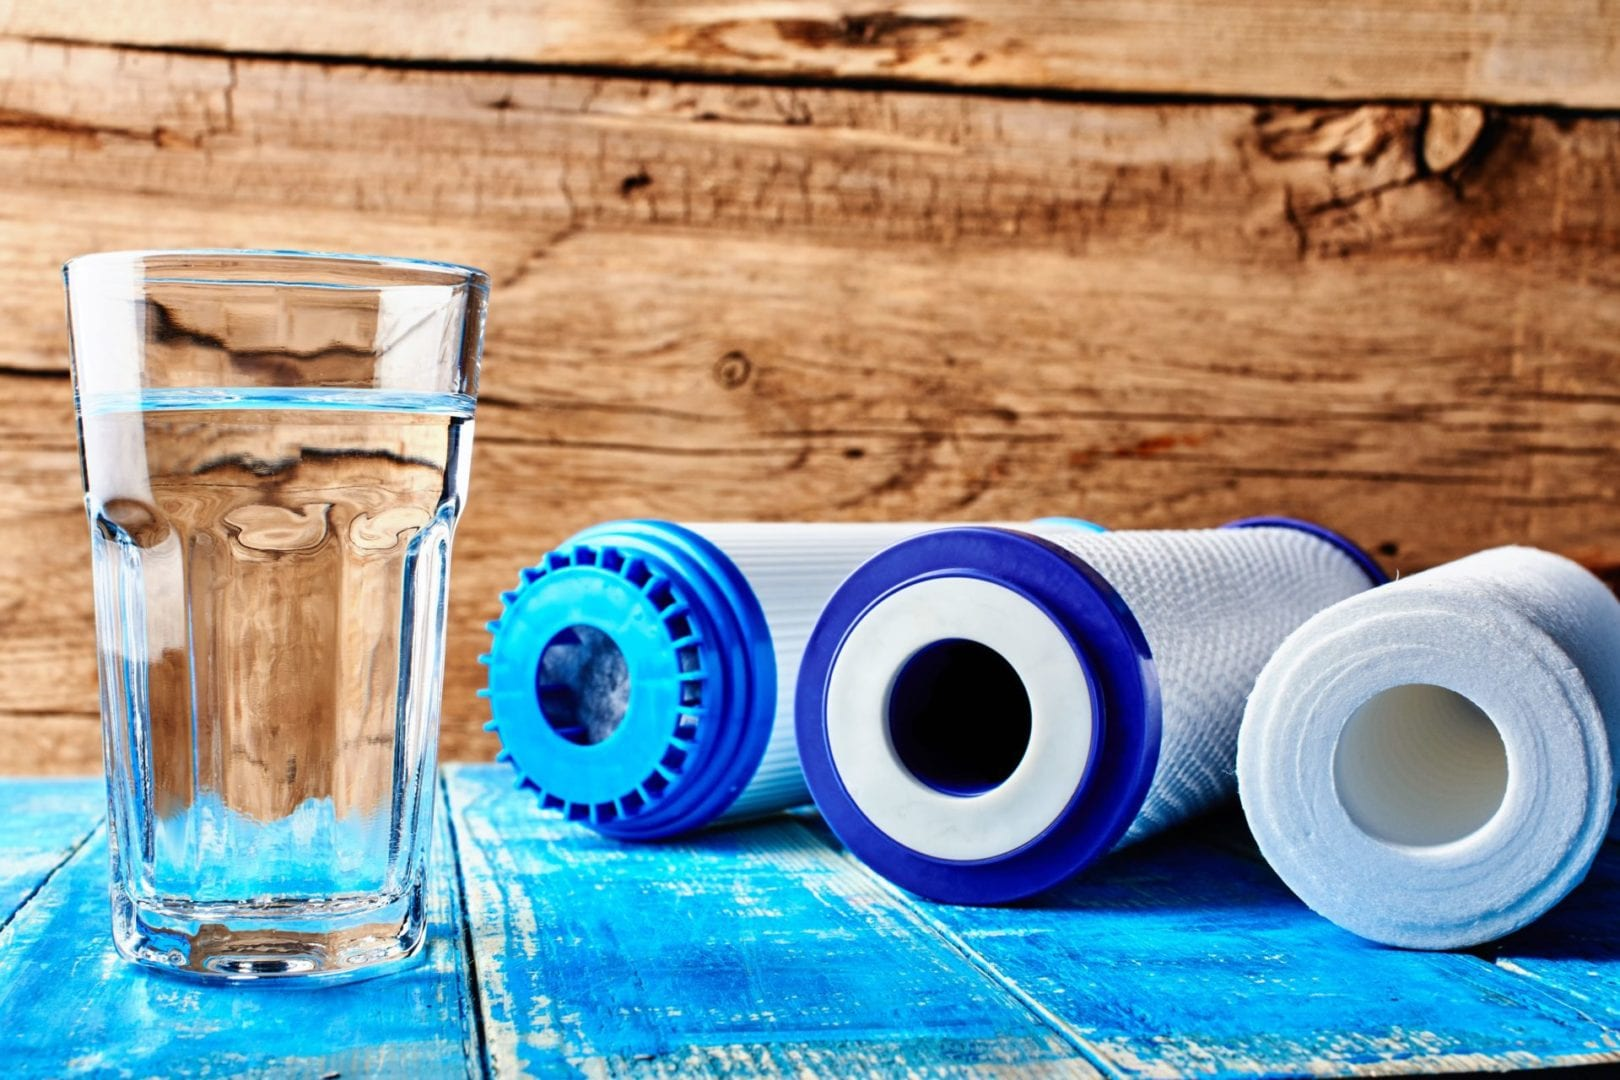 Household water filtration system. Carbon filters and a glass of water on a table.